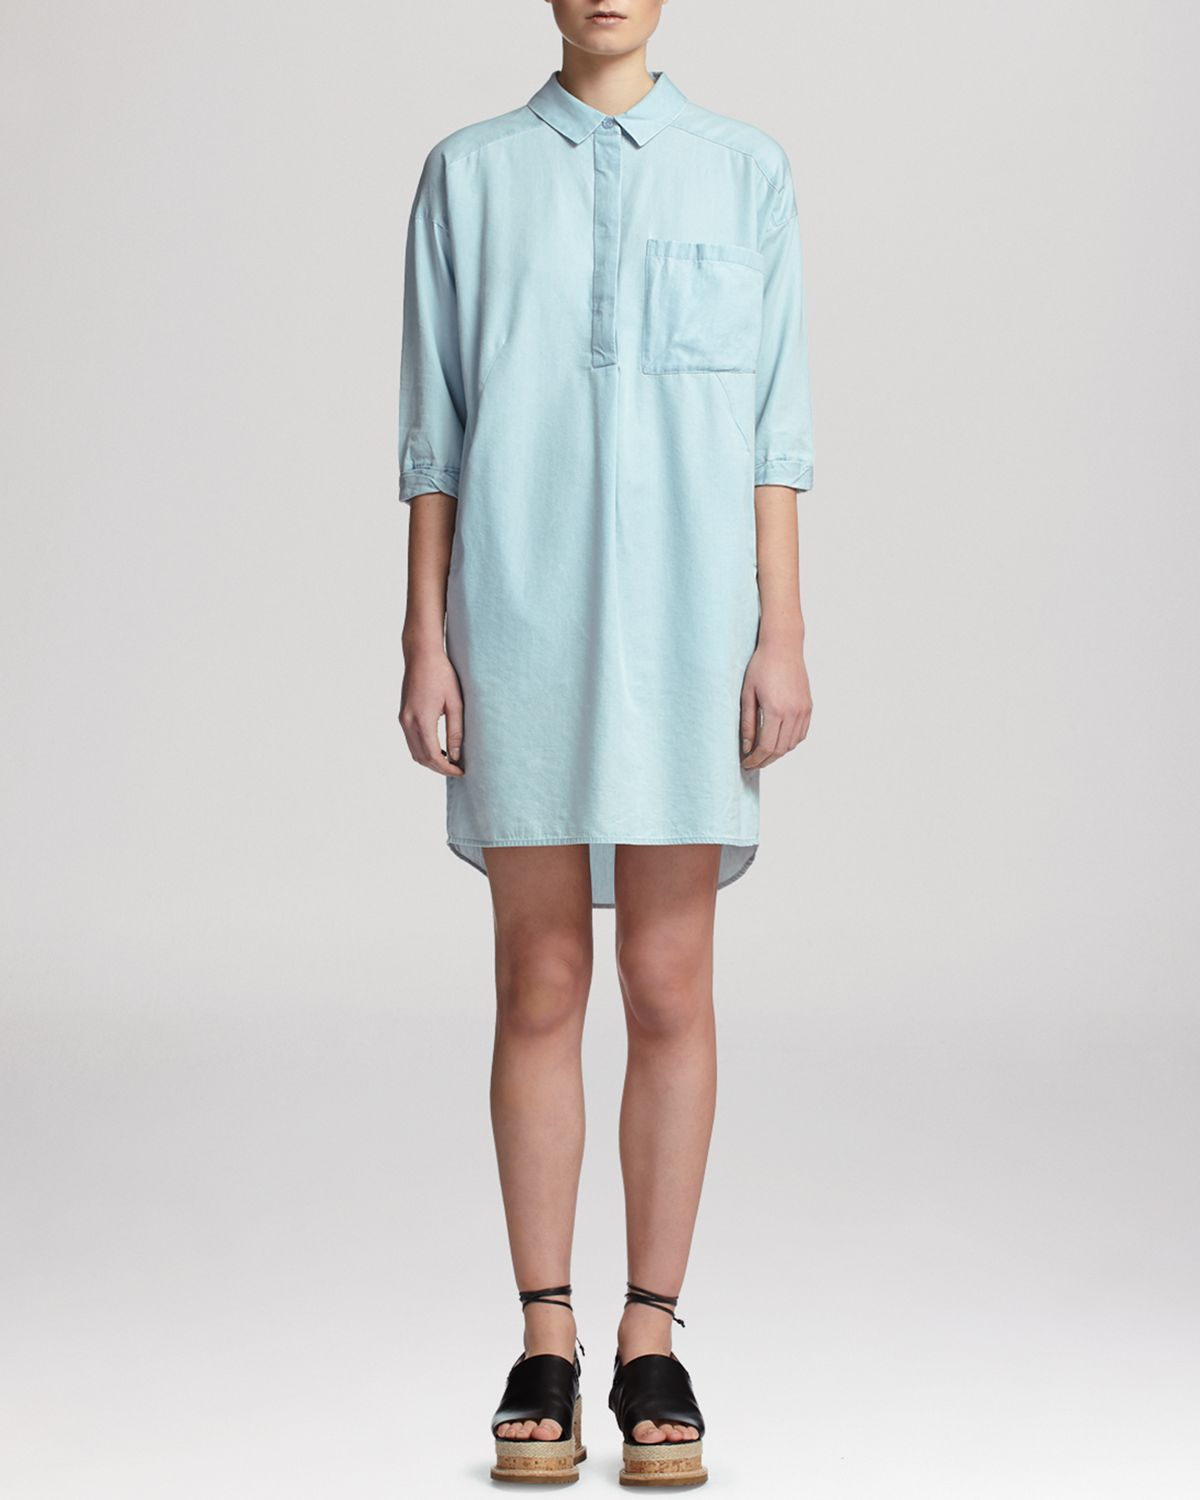 Whistles dress oversized chambray shirt in blue lyst for Chambray dress